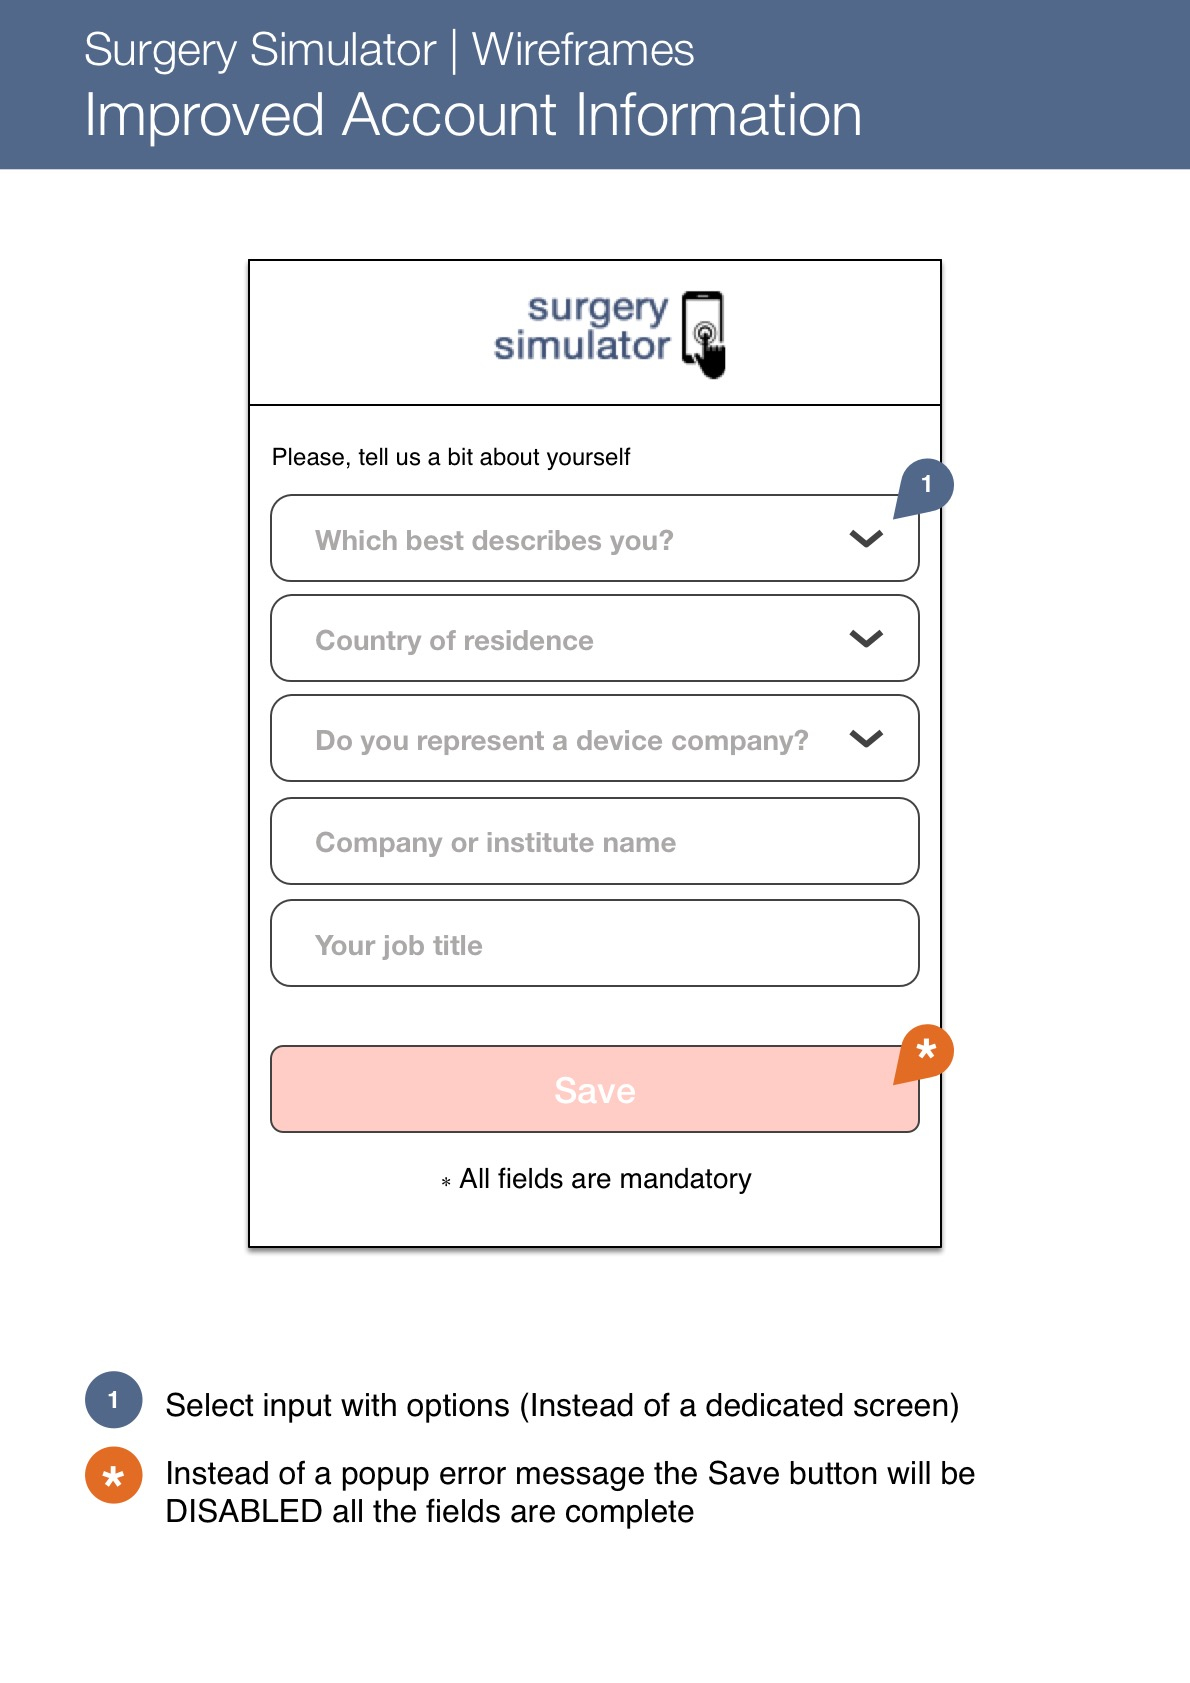 Surgery Simulator app - Wireframes 4